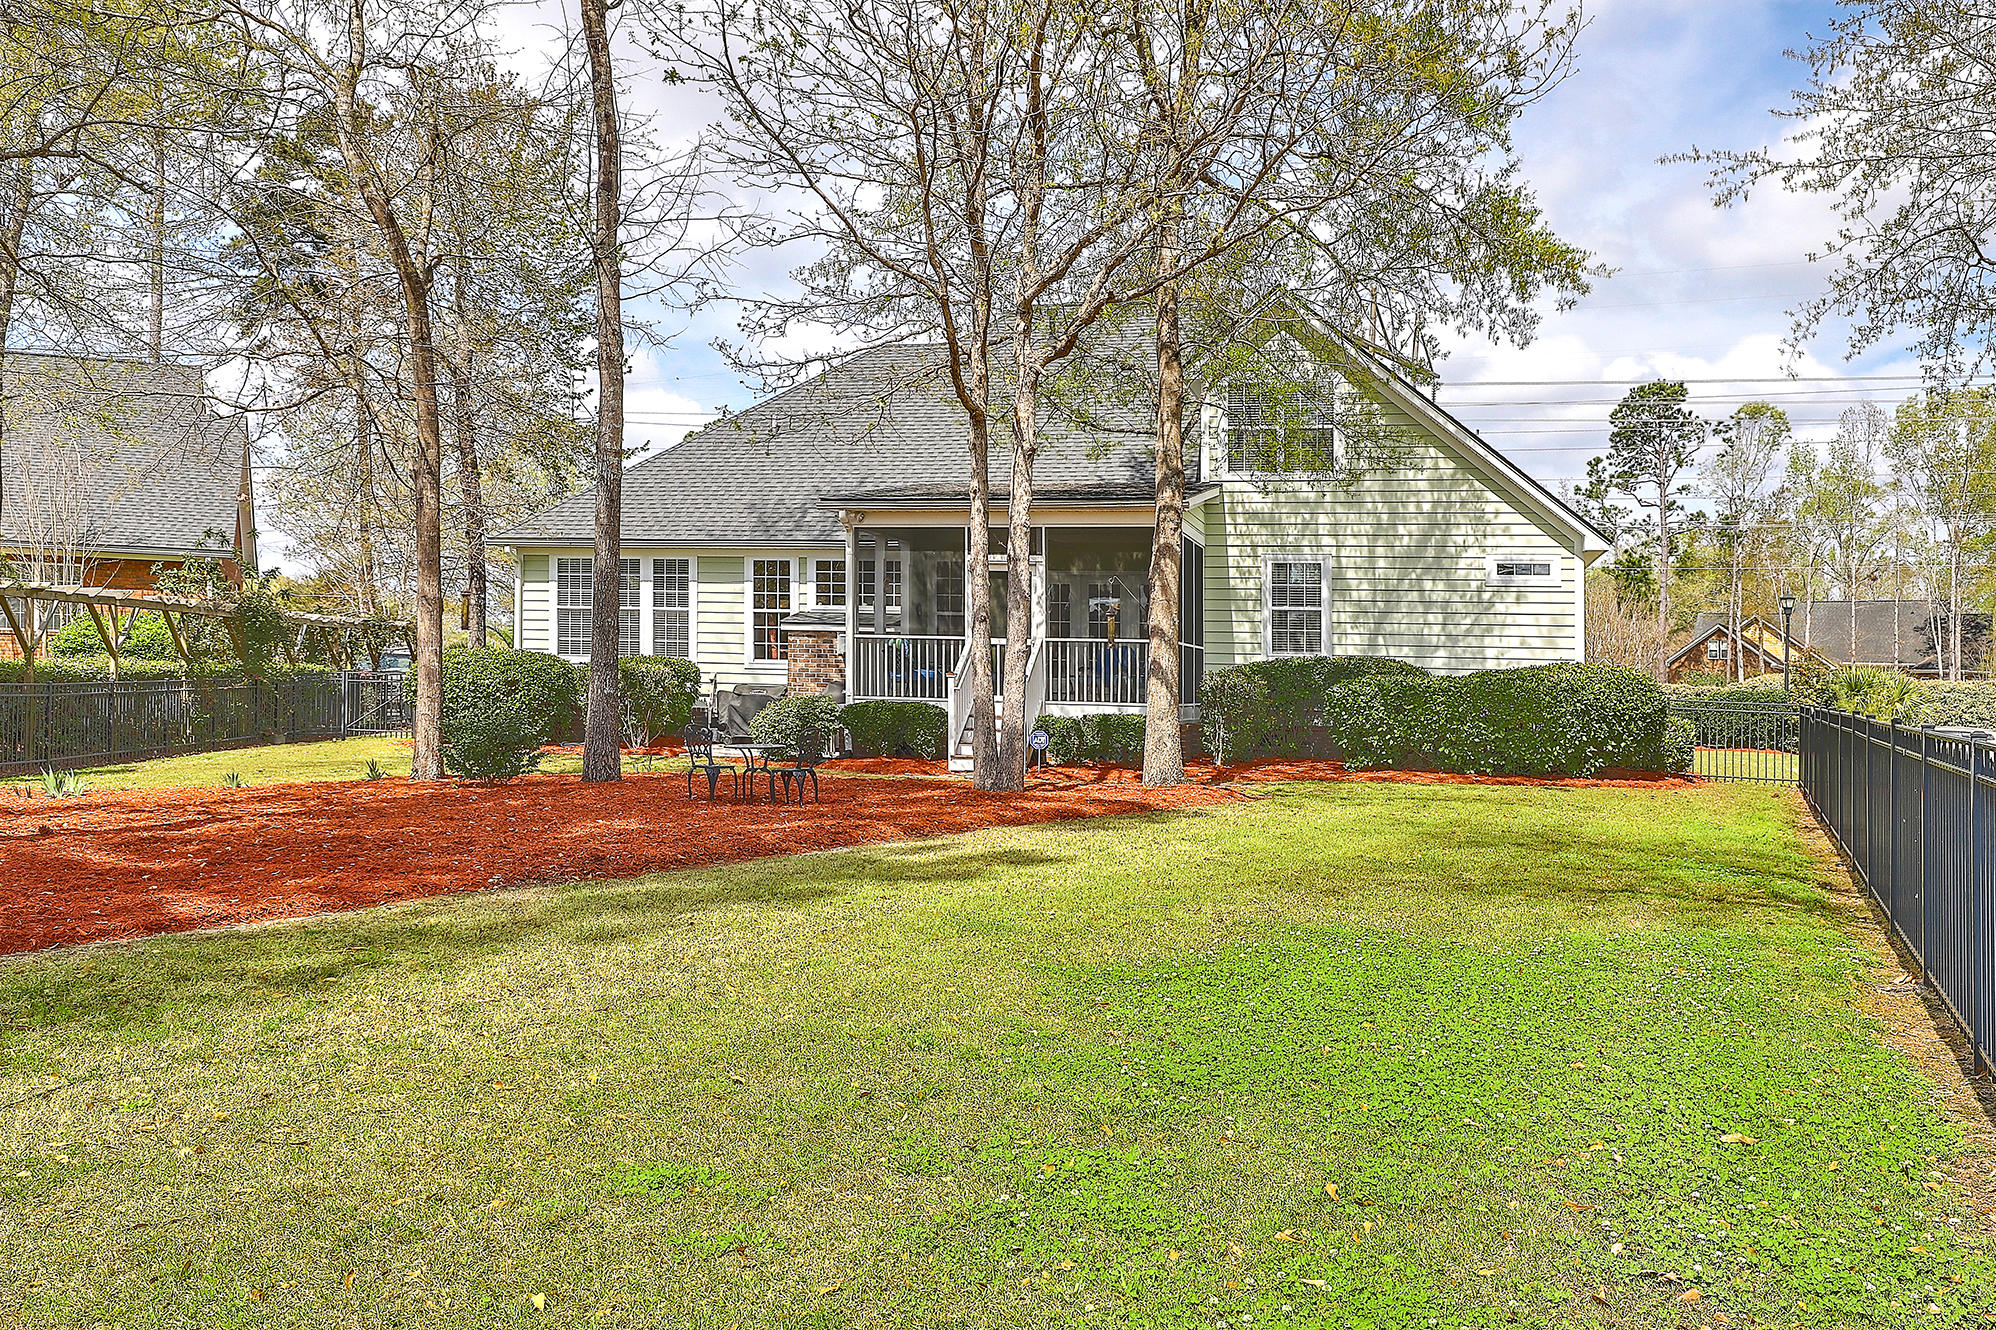 Photo of 8911 E Fairway Woods Dr, North Charleston, SC 29420